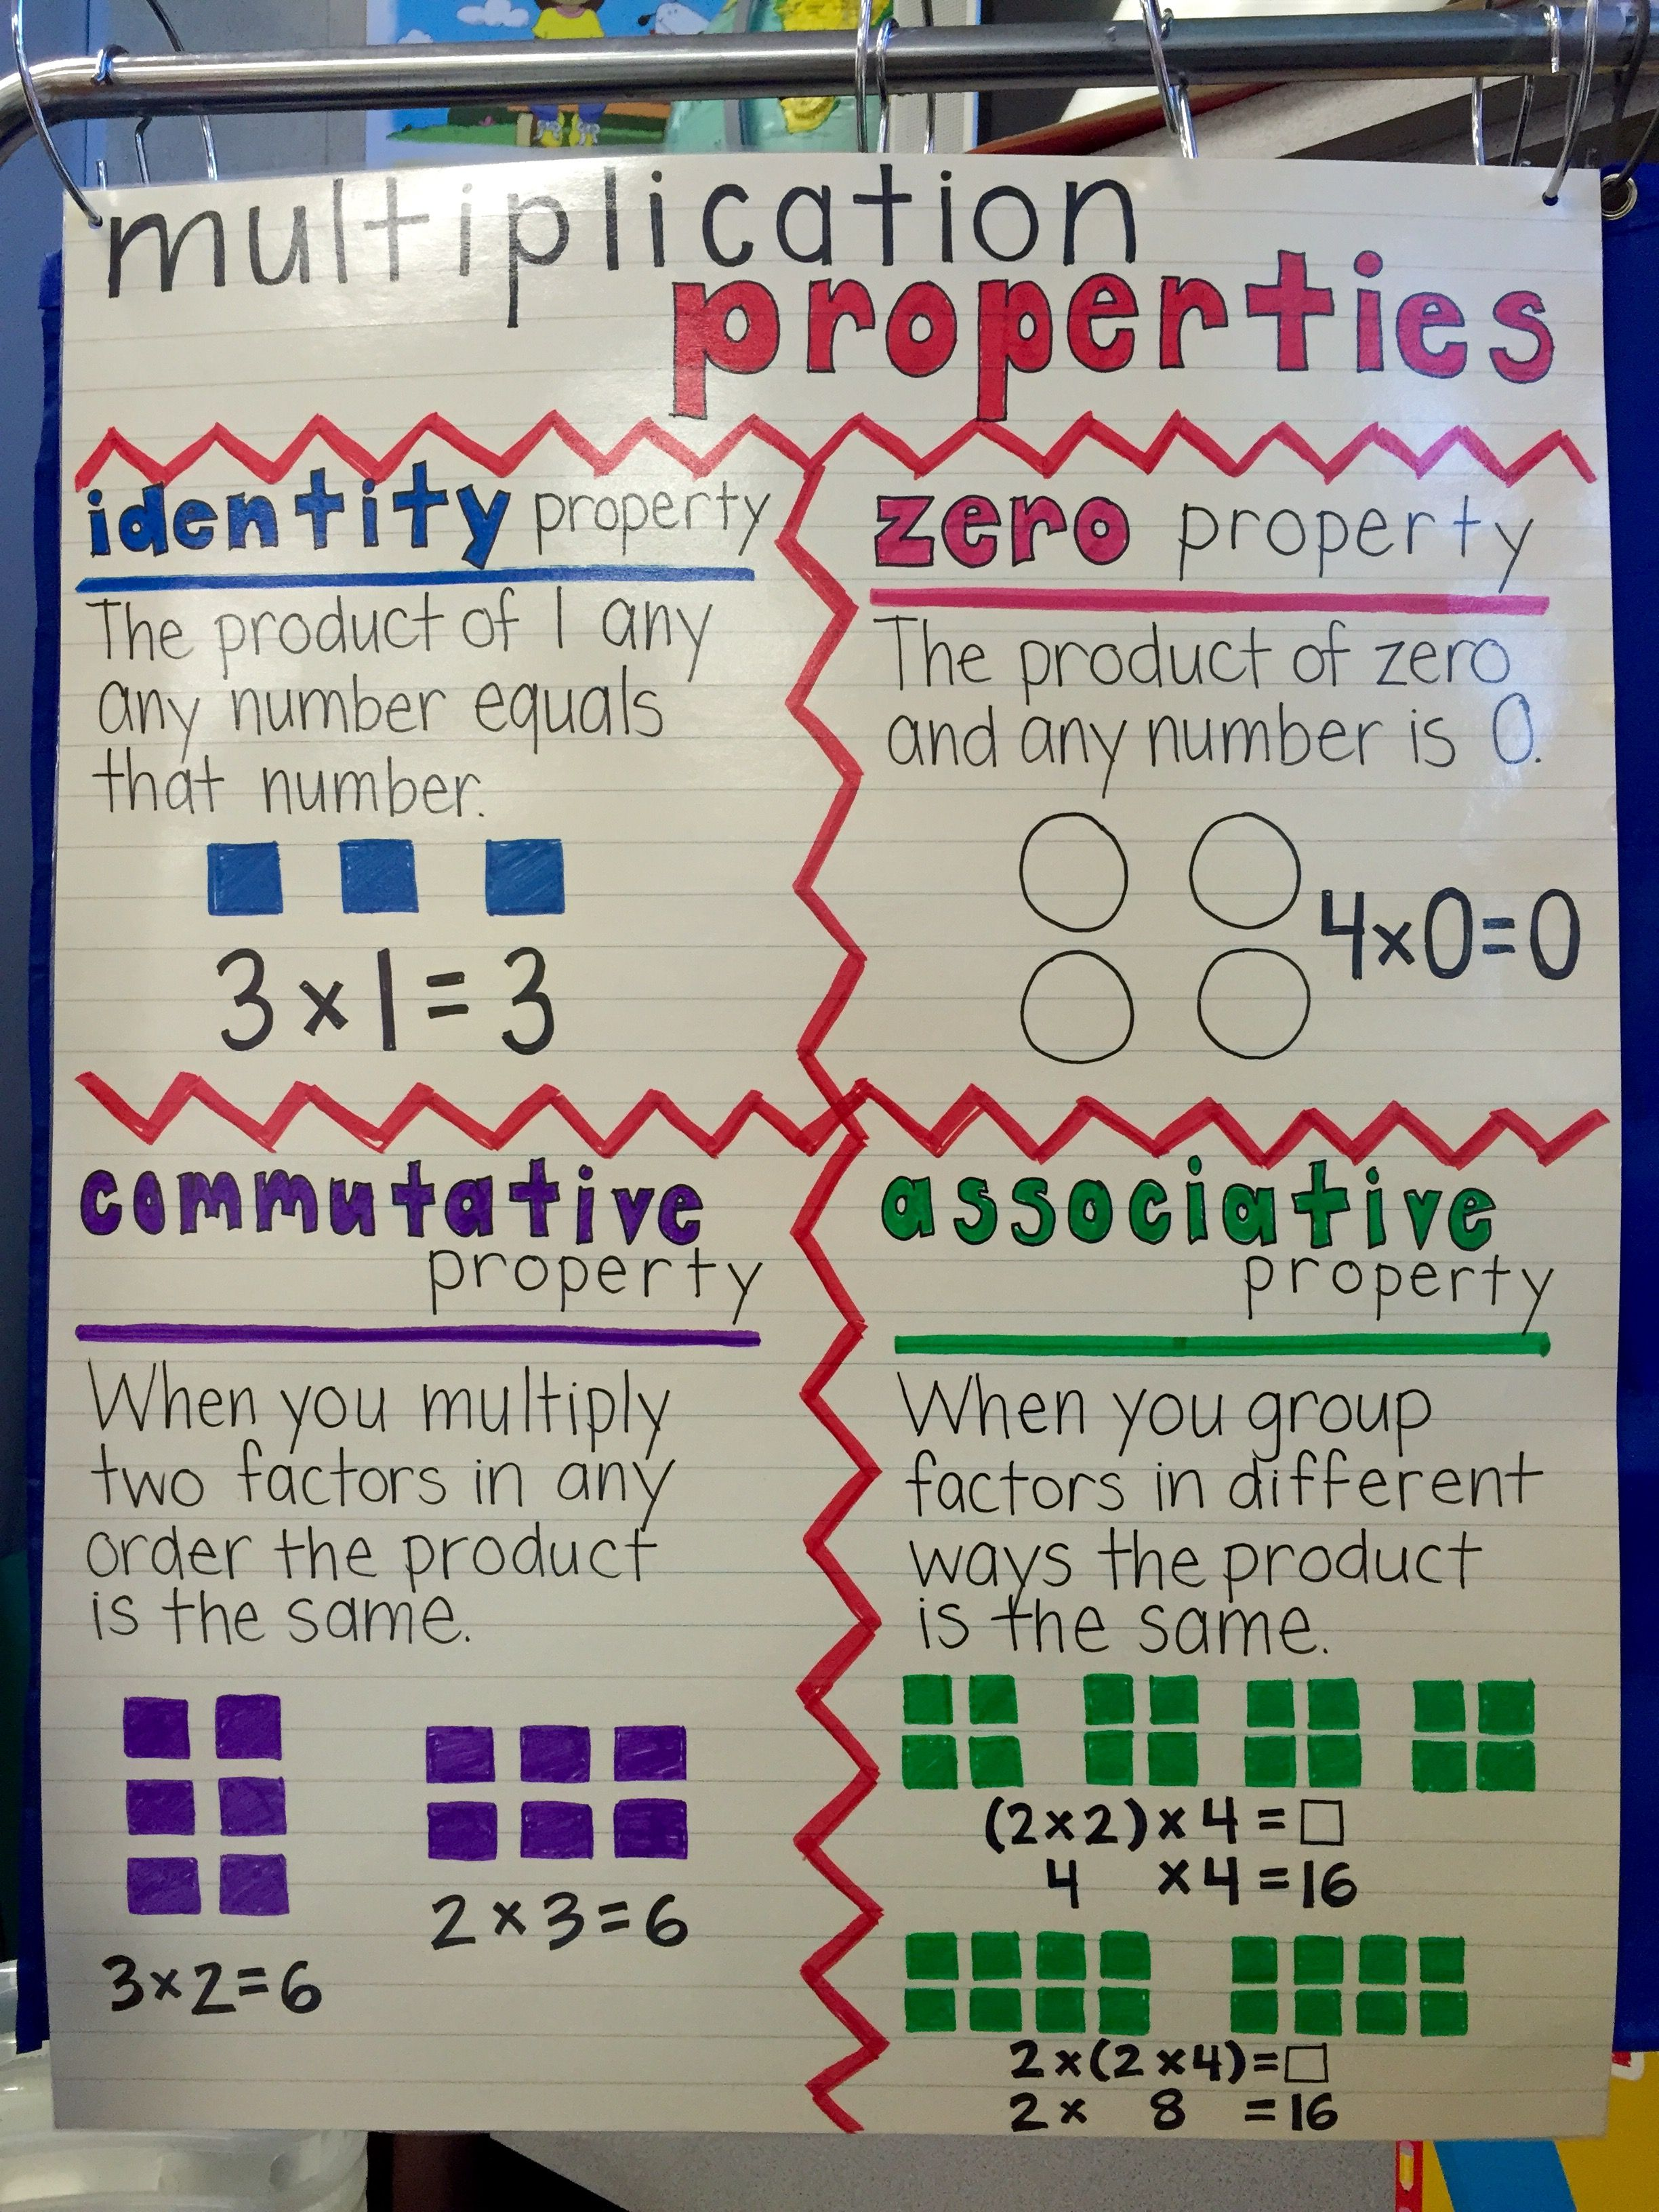 Multiplication properties poster 3rd grade multiplication math multiplication properties poster 3rd grade multiplication math properties poster nvjuhfo Gallery